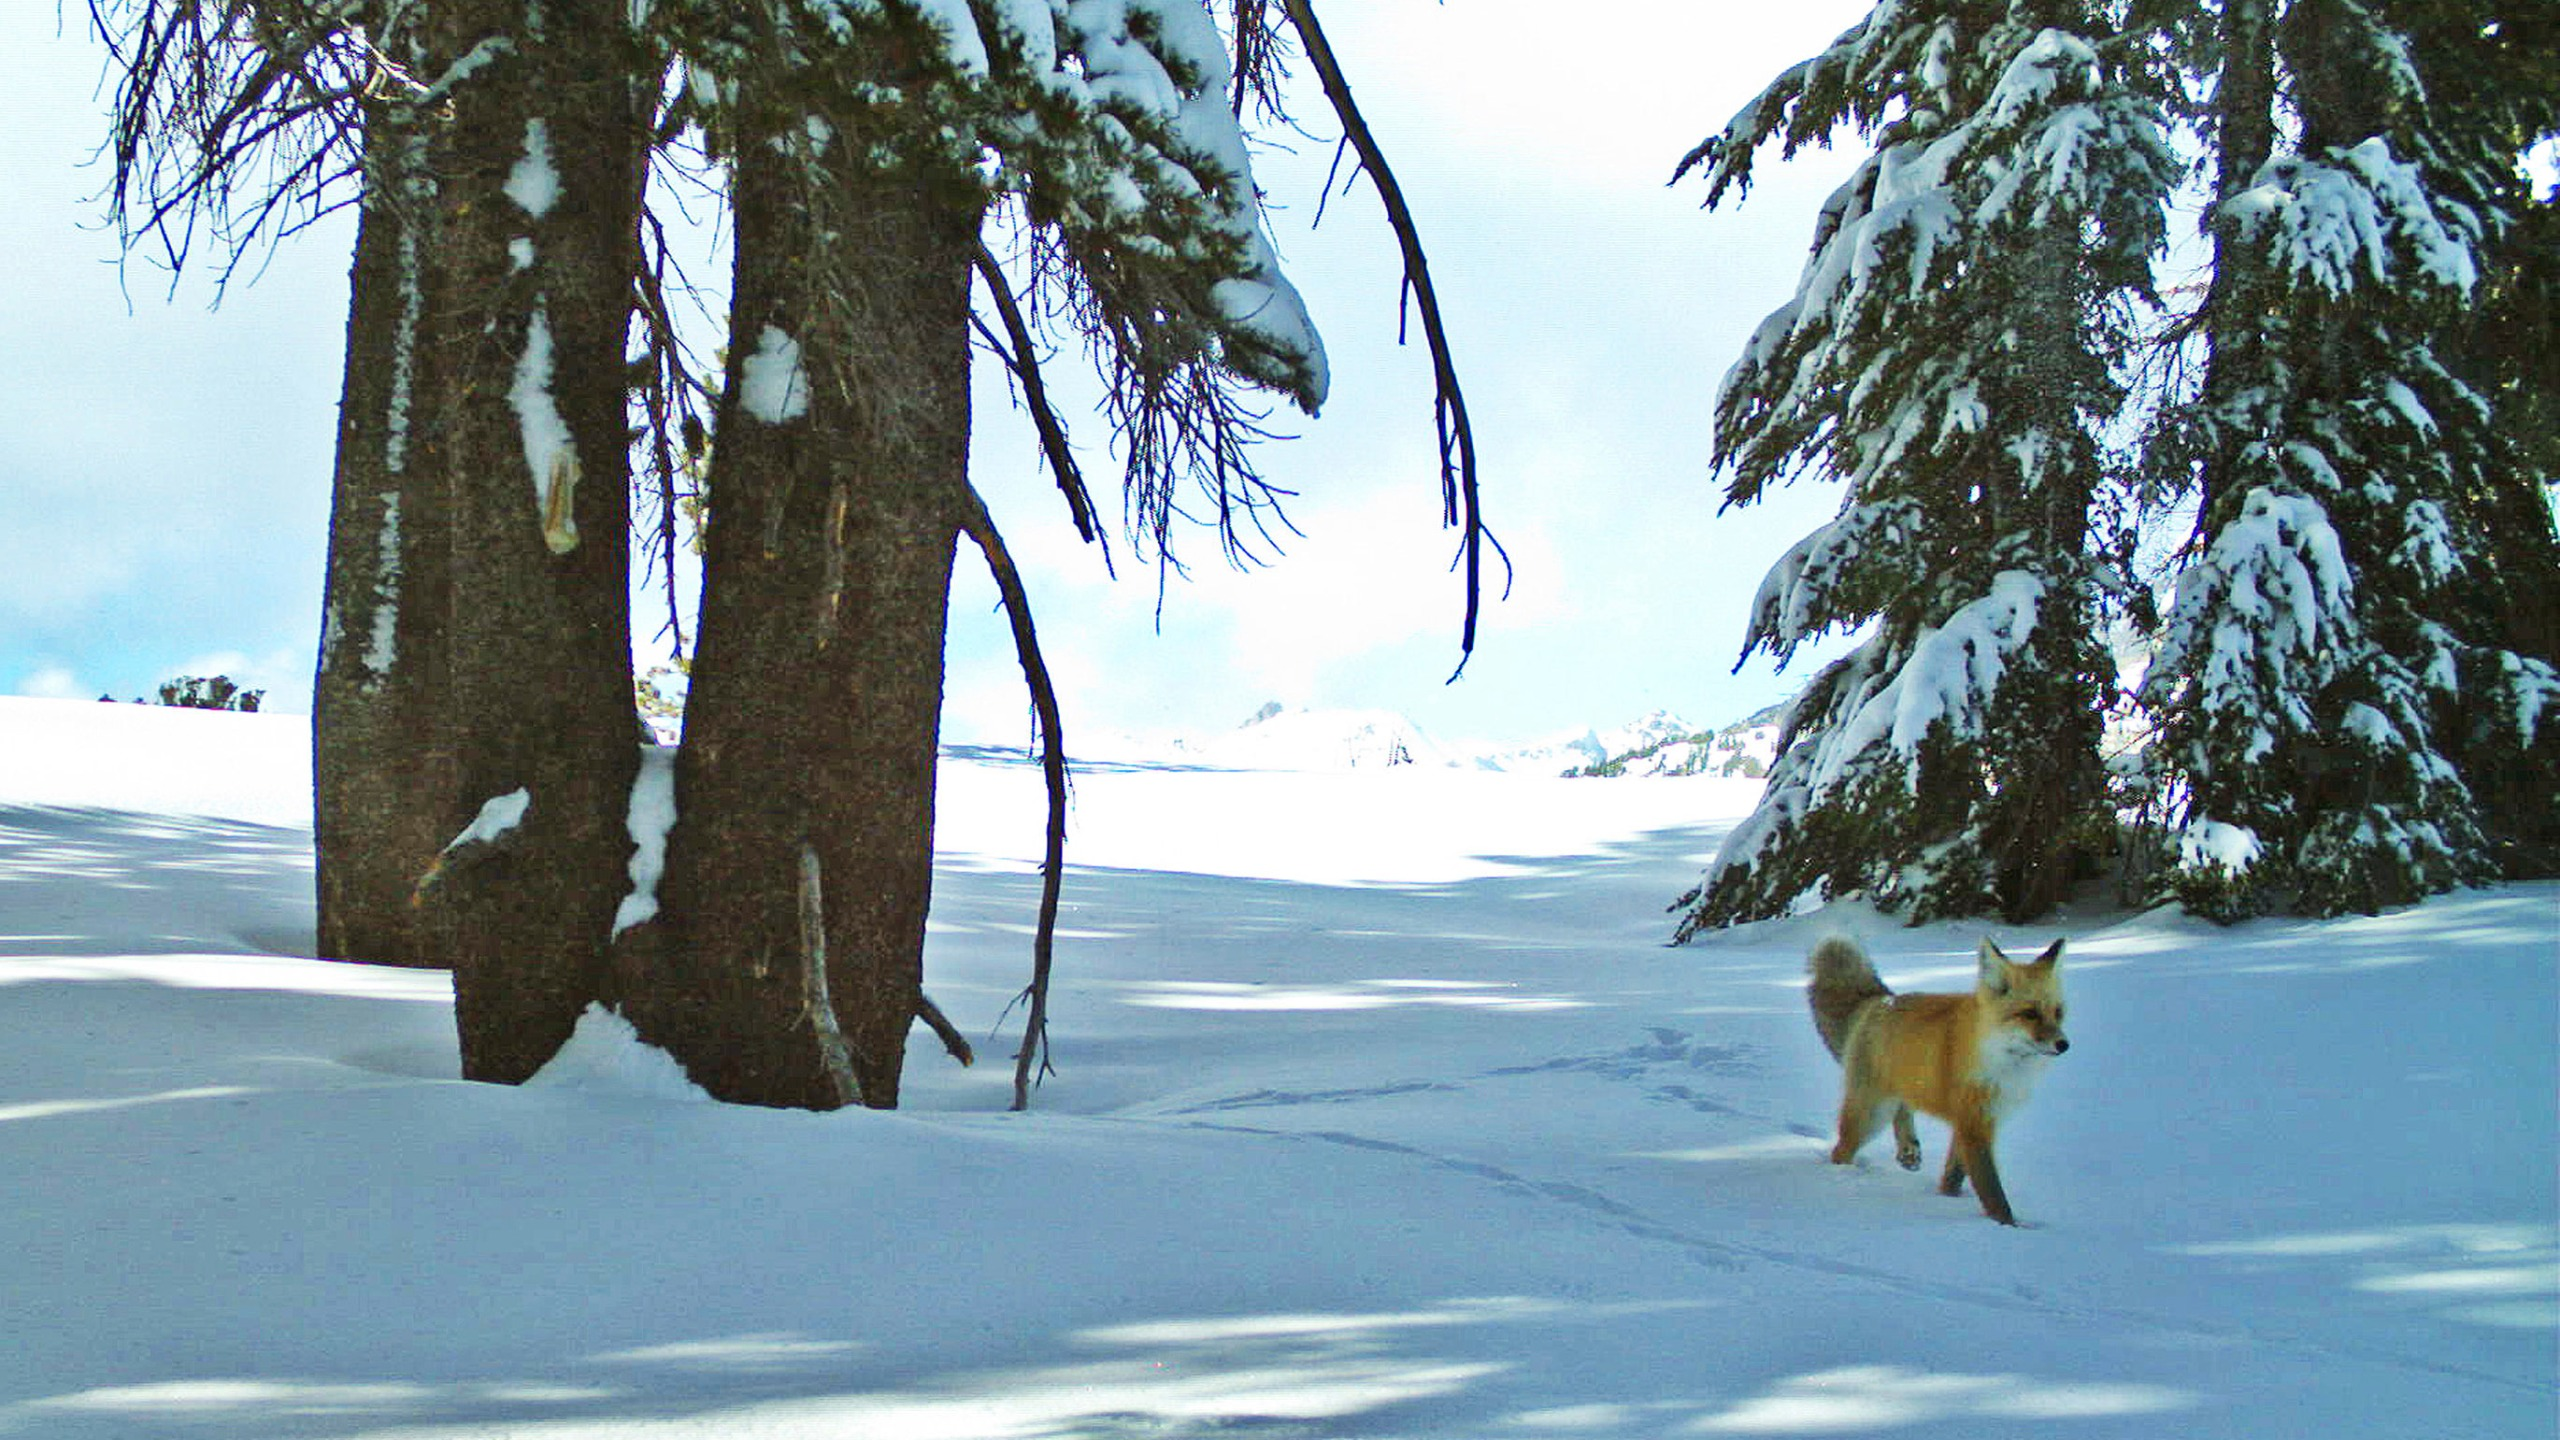 In this Dec. 13, 2014, file photo provided by the National Park Service from a motion-sensitive camera, a Sierra Nevada red fox walks in Yosemite National Park, Calif. (National Park Service via AP, File)